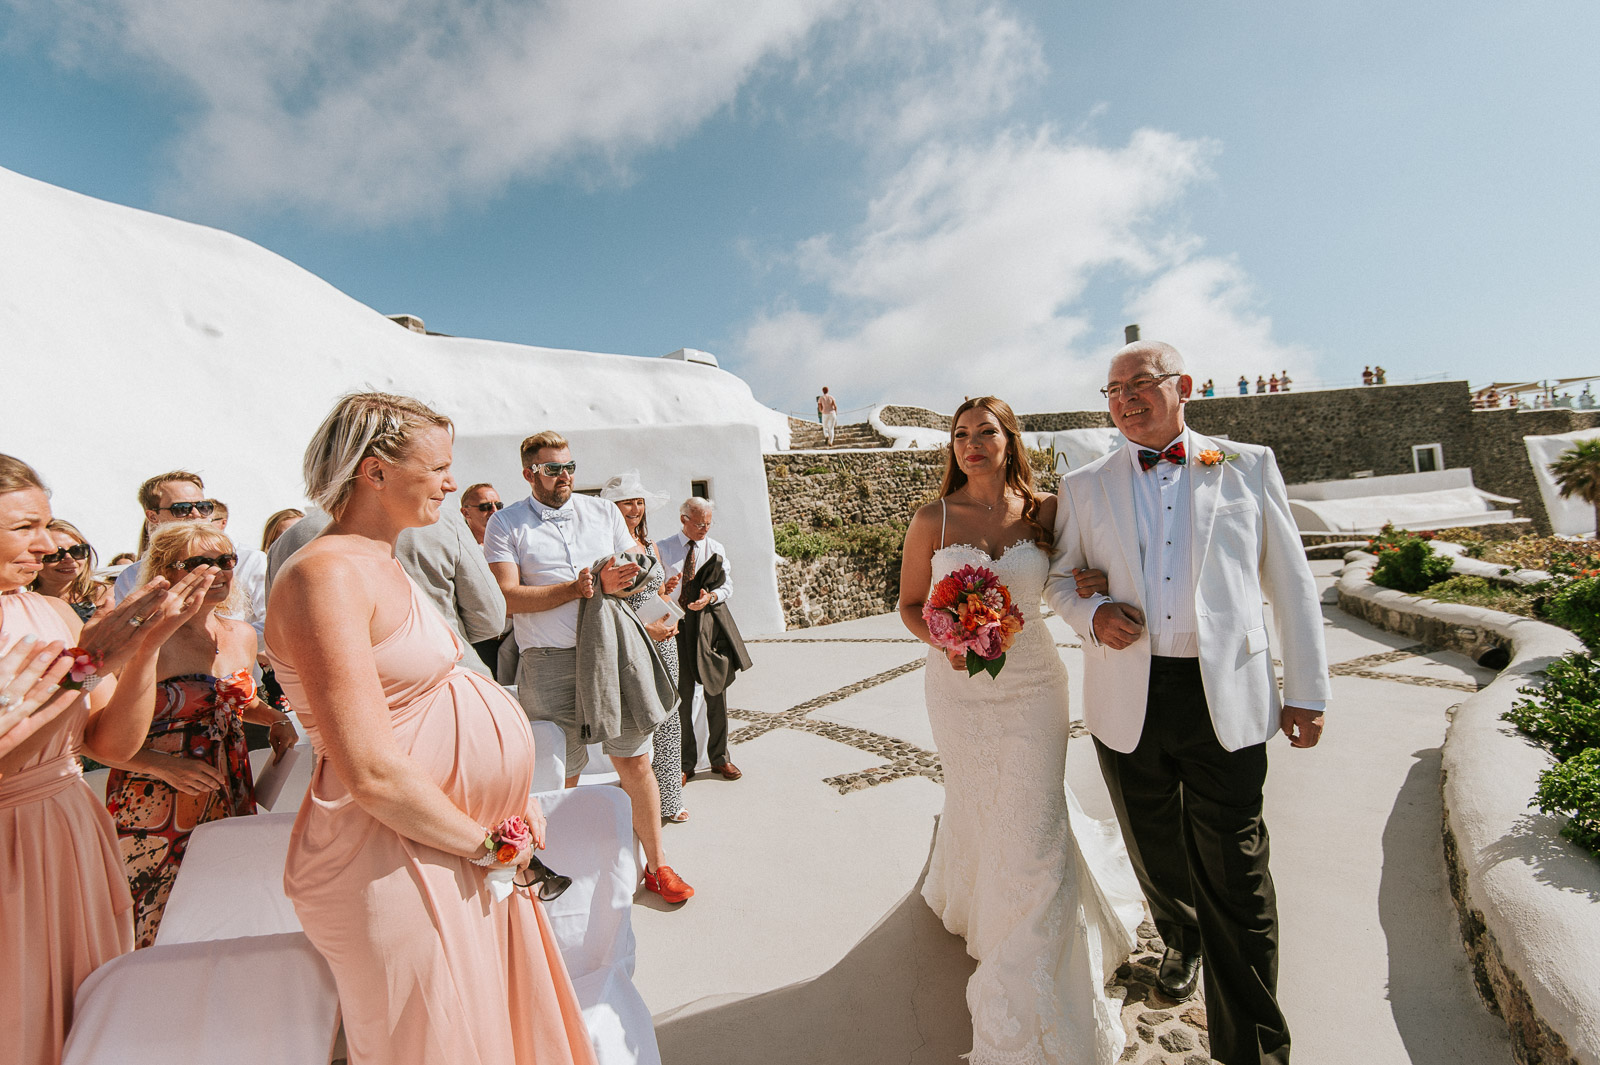 Santorini-Wedding-Photographer-Greece-Destination-Weddings-Mait-Juriado-M&J-Studios-057